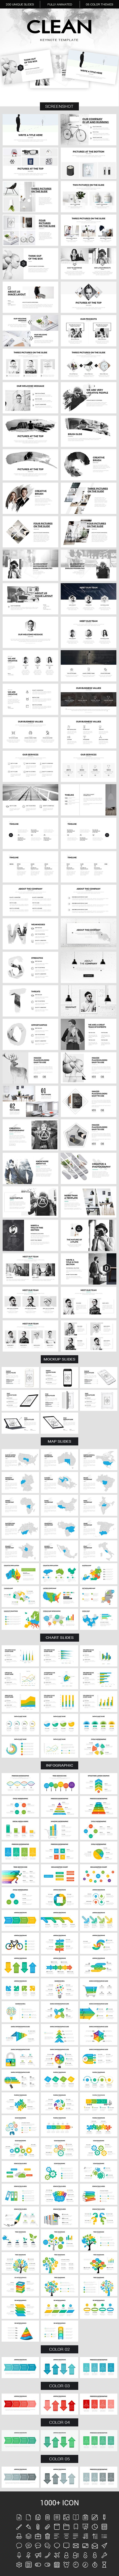 Clean Keynote Template. Download here: http://graphicriver.net/item/clean-keynote-template/15921009?ref=ksioks